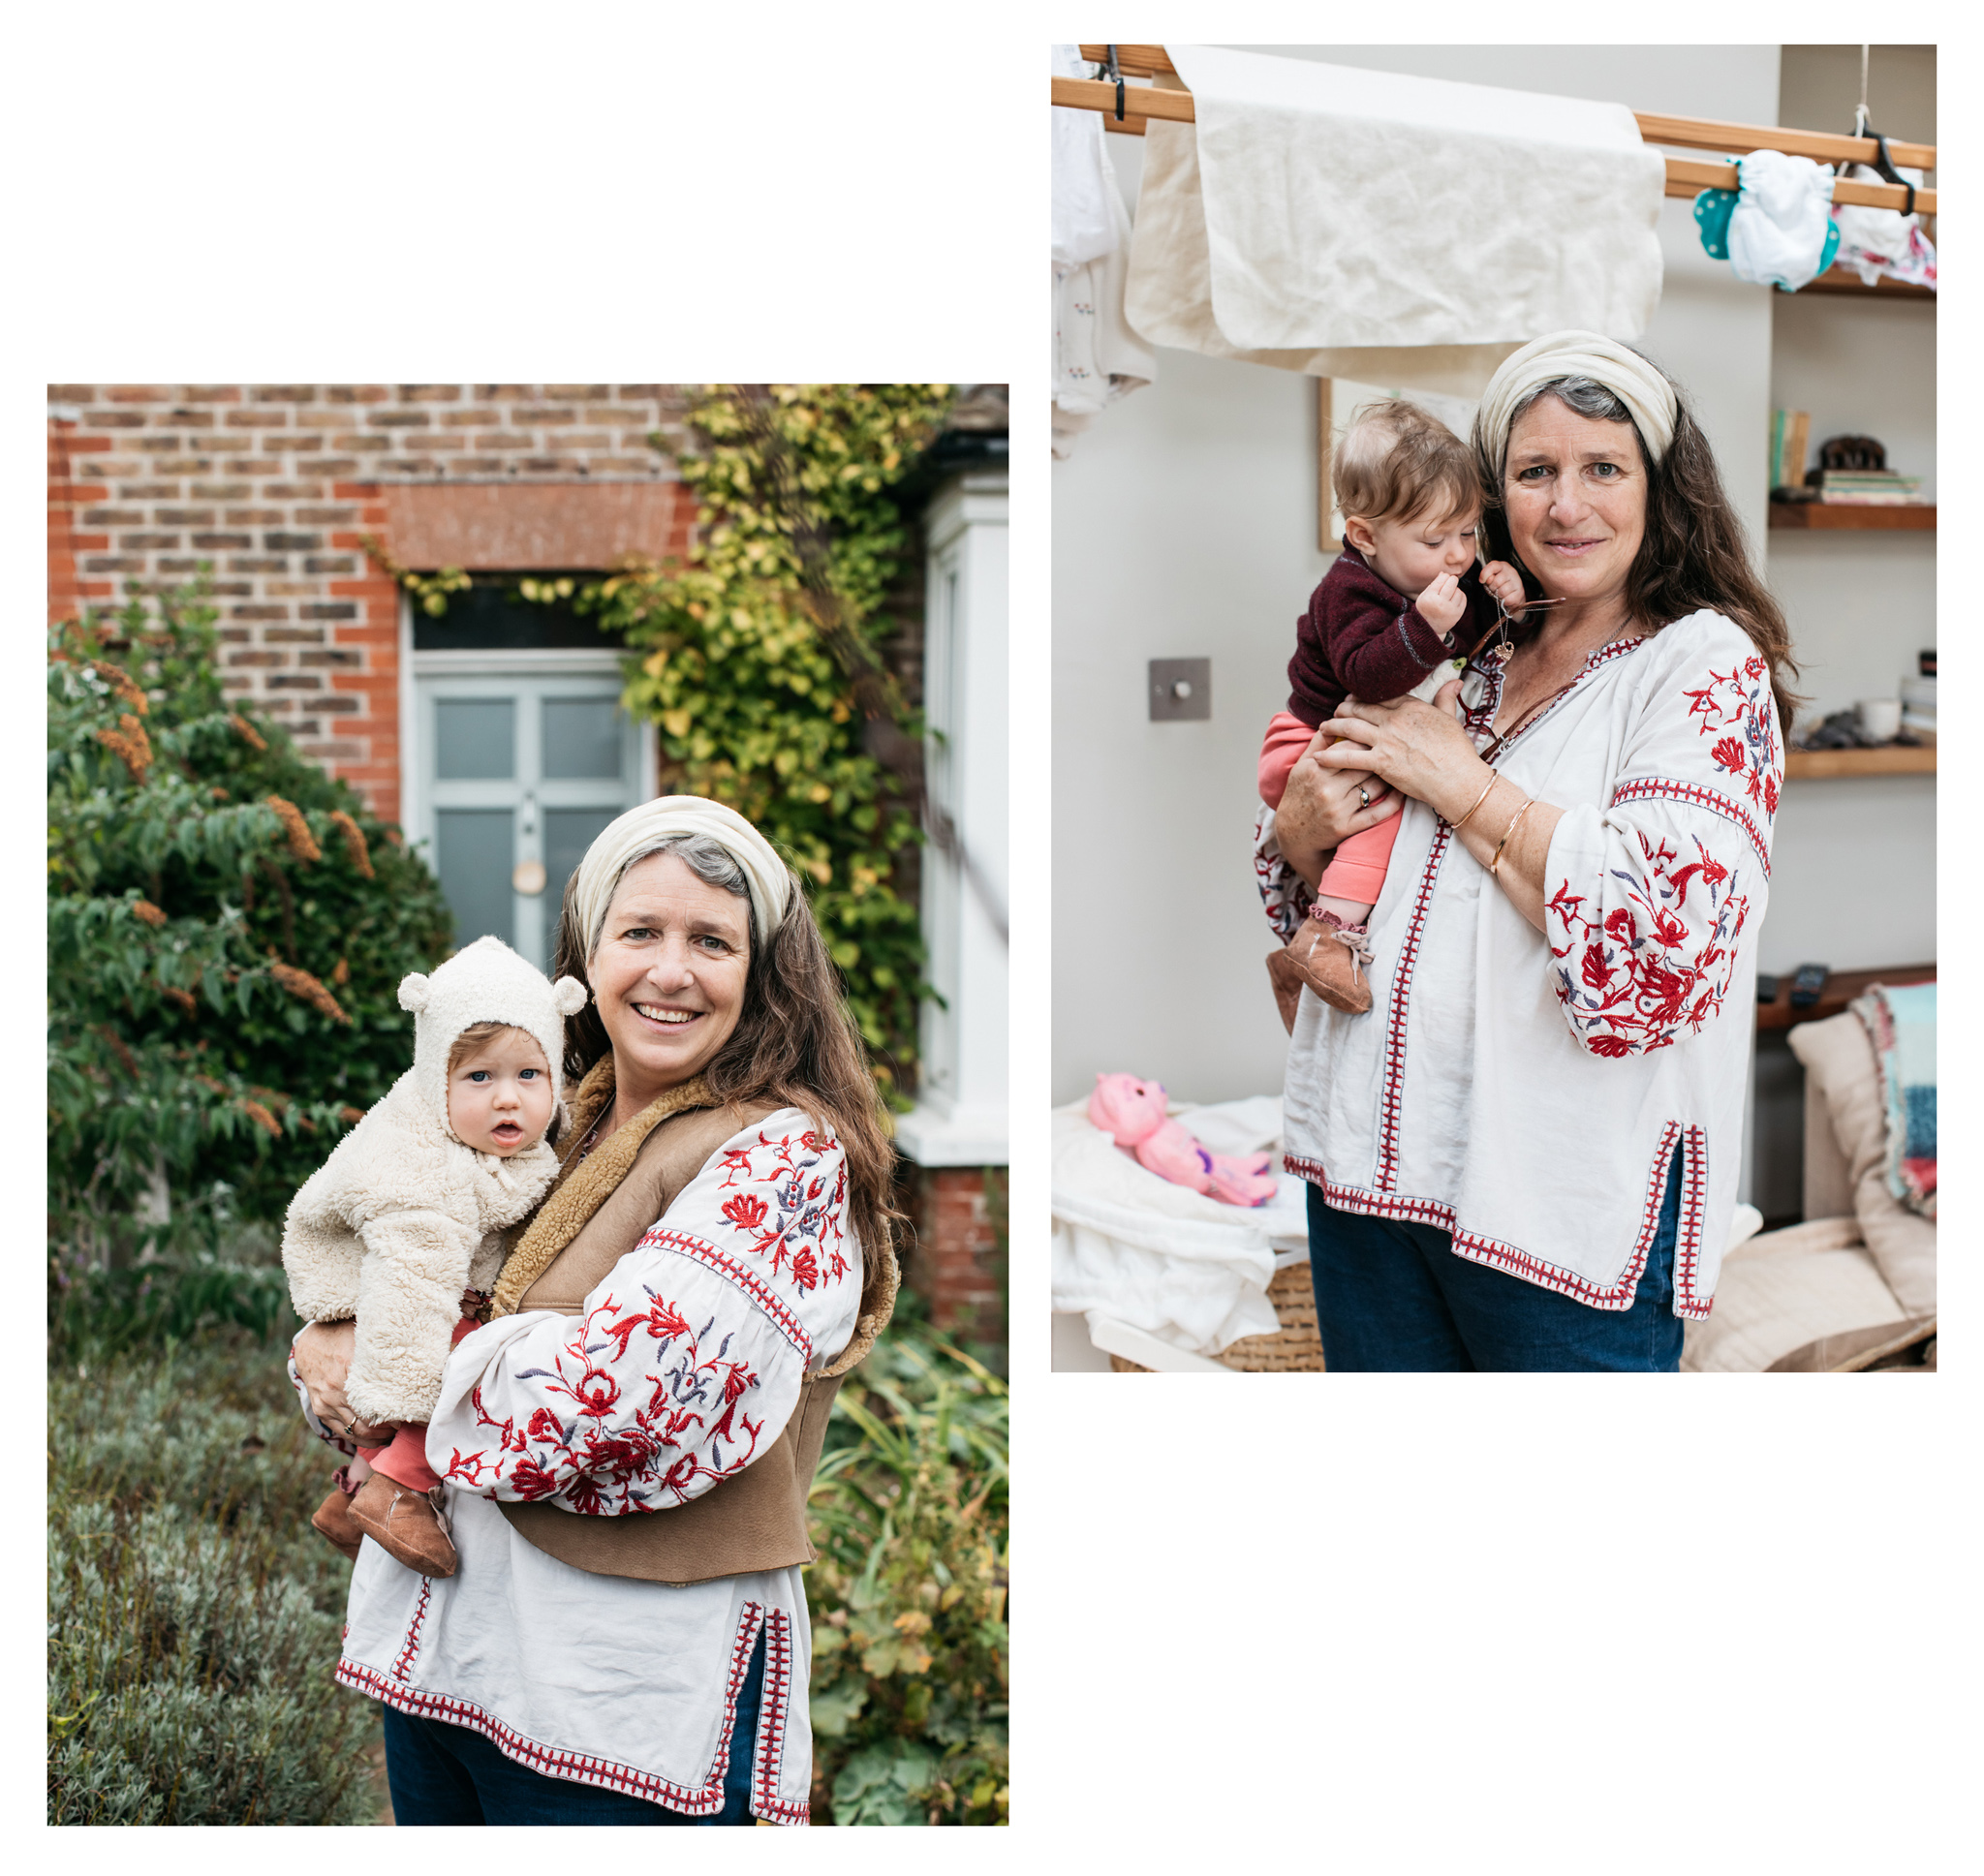 Samsara is a birth and post natal doula from East Sussex who talked about her views and passions on green living in Green Parent Magazine. Photographed by Emma Croman.